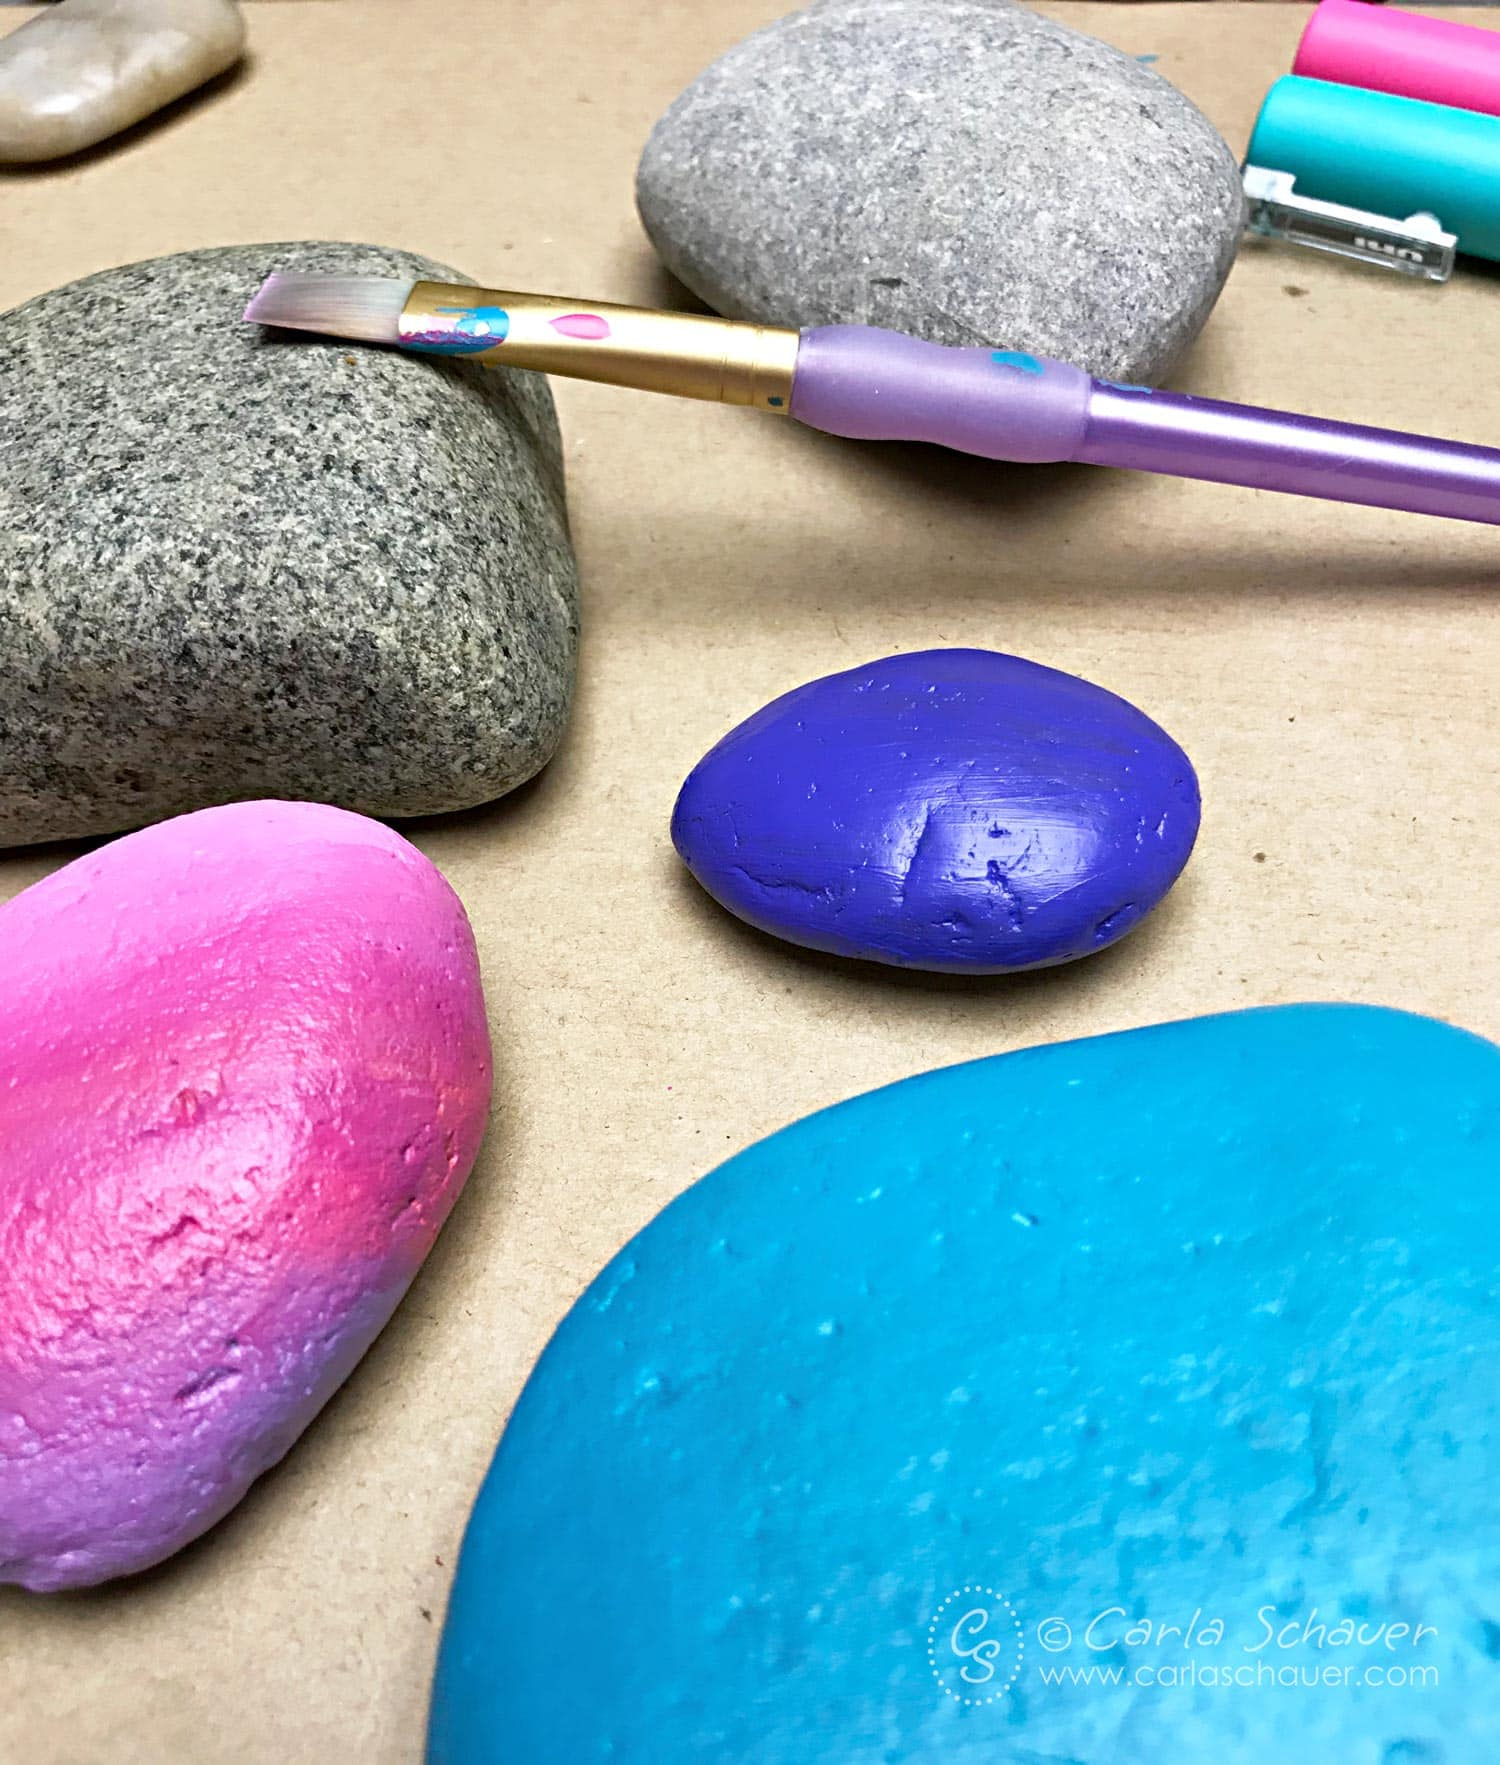 The ultimate guide to the best supplies for painting rocks. Paints, pens, tools, sealers, and more. | Click for the entire guide at carlaschauer.com #easypaintedrocks #paintedrockideas #paintedrocks #rockpainting #decoratedrocks #quickcrafts #teencrafts #tweencrafts #rockpaintingsupplies #paintingsupplies #craftsupplies